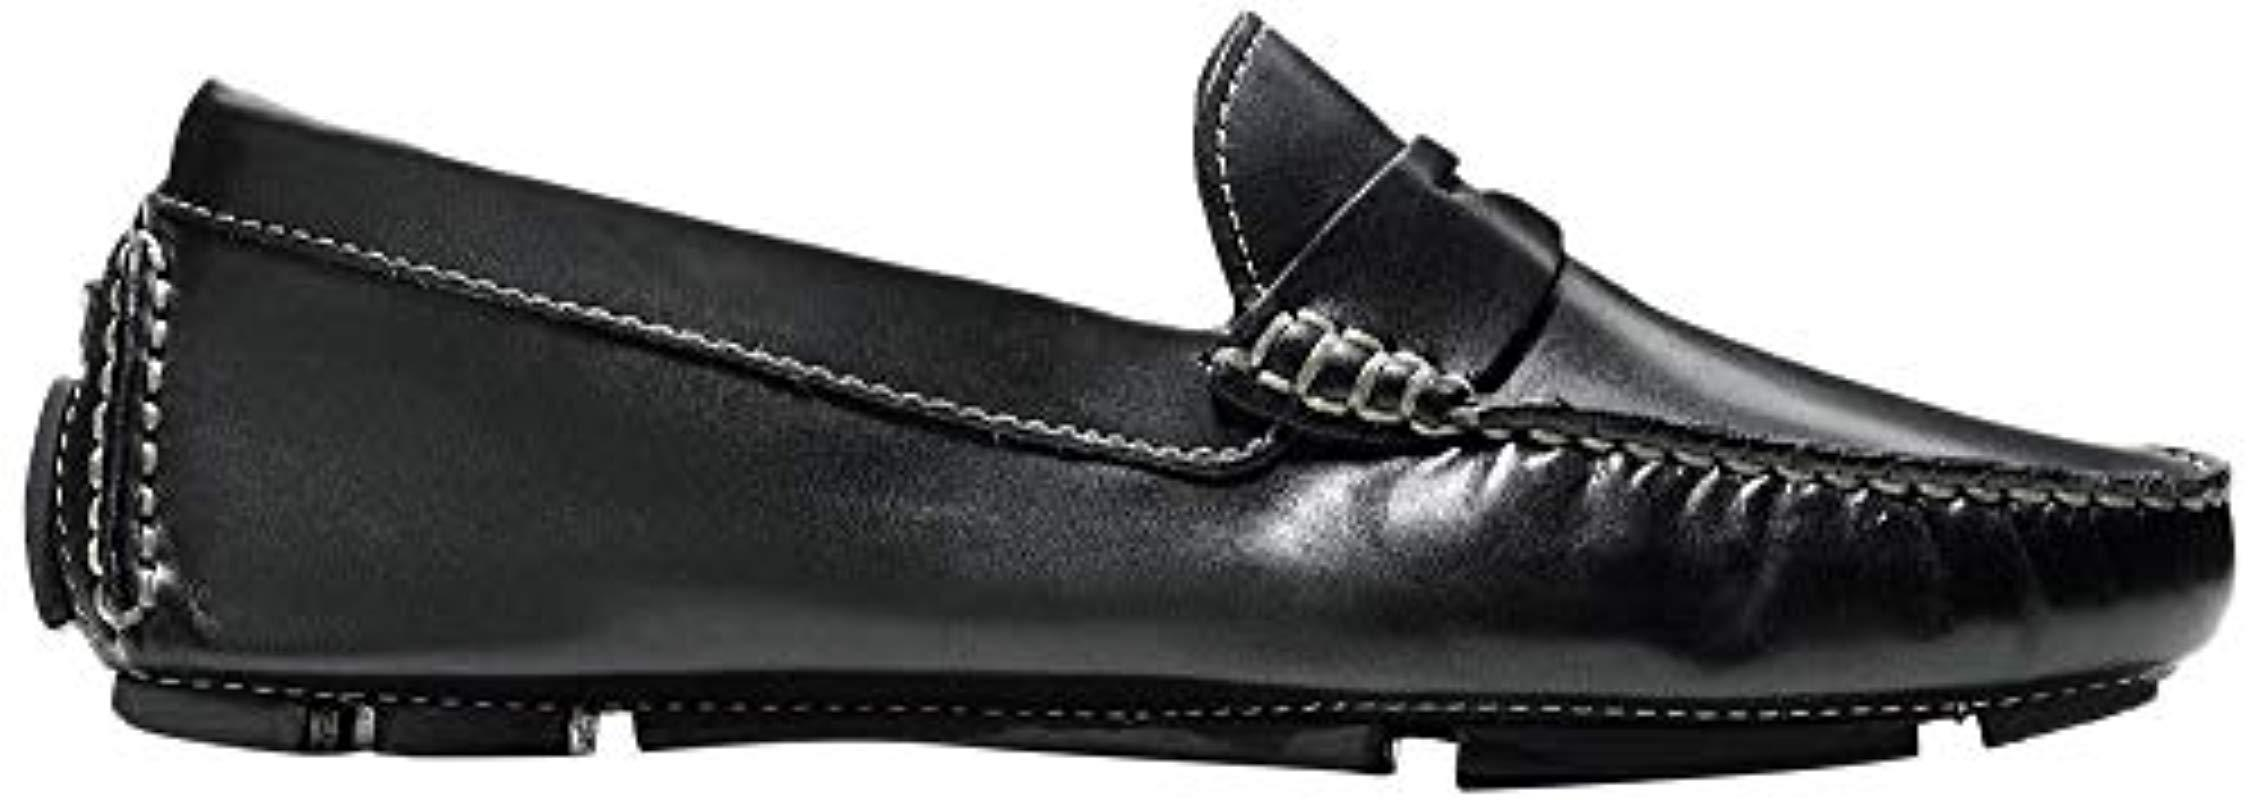 adebd3bb3c4 Lyst - Cole Haan Trillby Driver Penny Loafer in Black - Save 14.0%